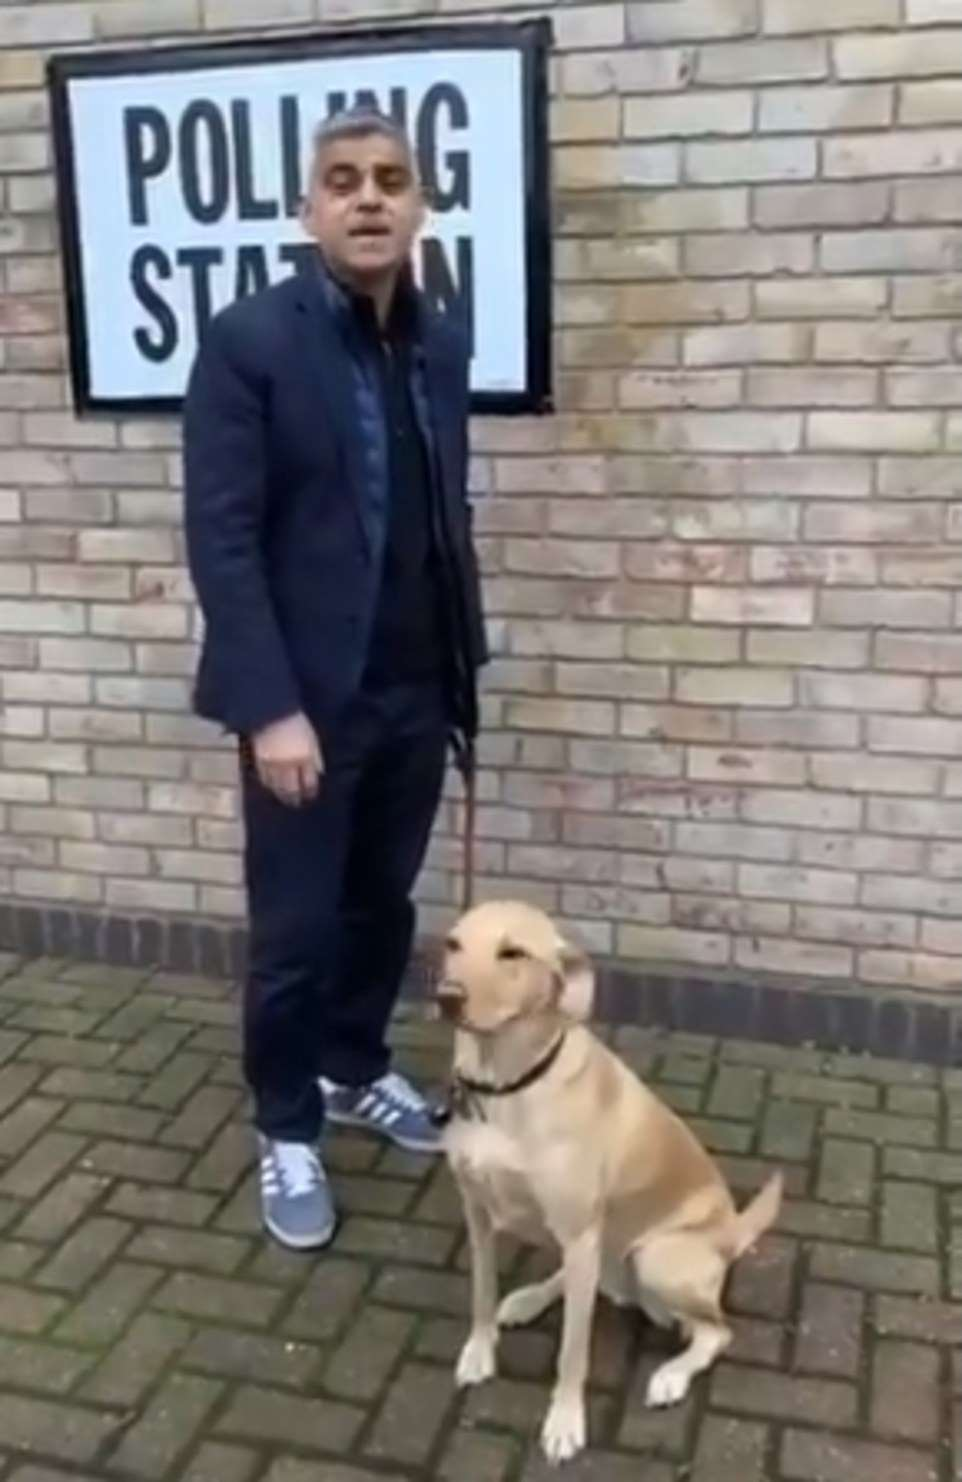 London Mayor Sadiq Khan was also out and about today and took his dog Luna to the polls, urging people to vote